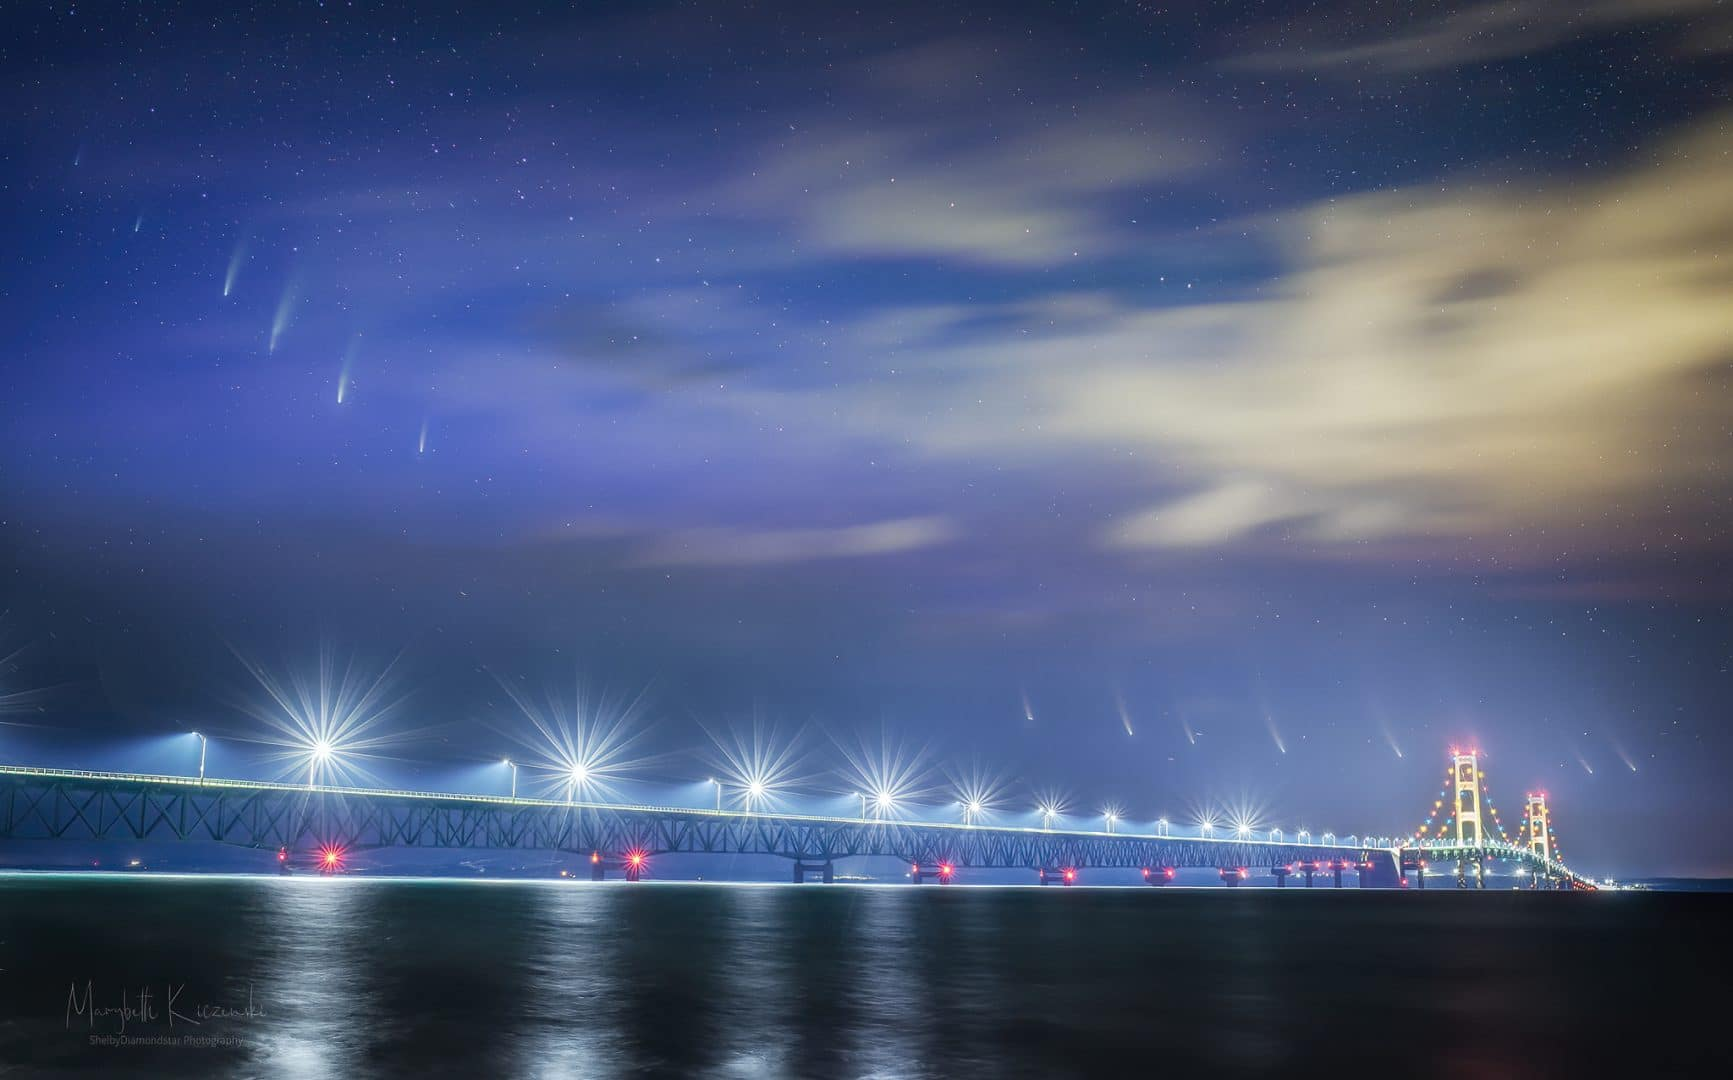 Deepscape astrophotography at Mackinac Bridge and Comet NEOWISE - a time-blended image showing the motion of Comet NEOWISE through the night sky.